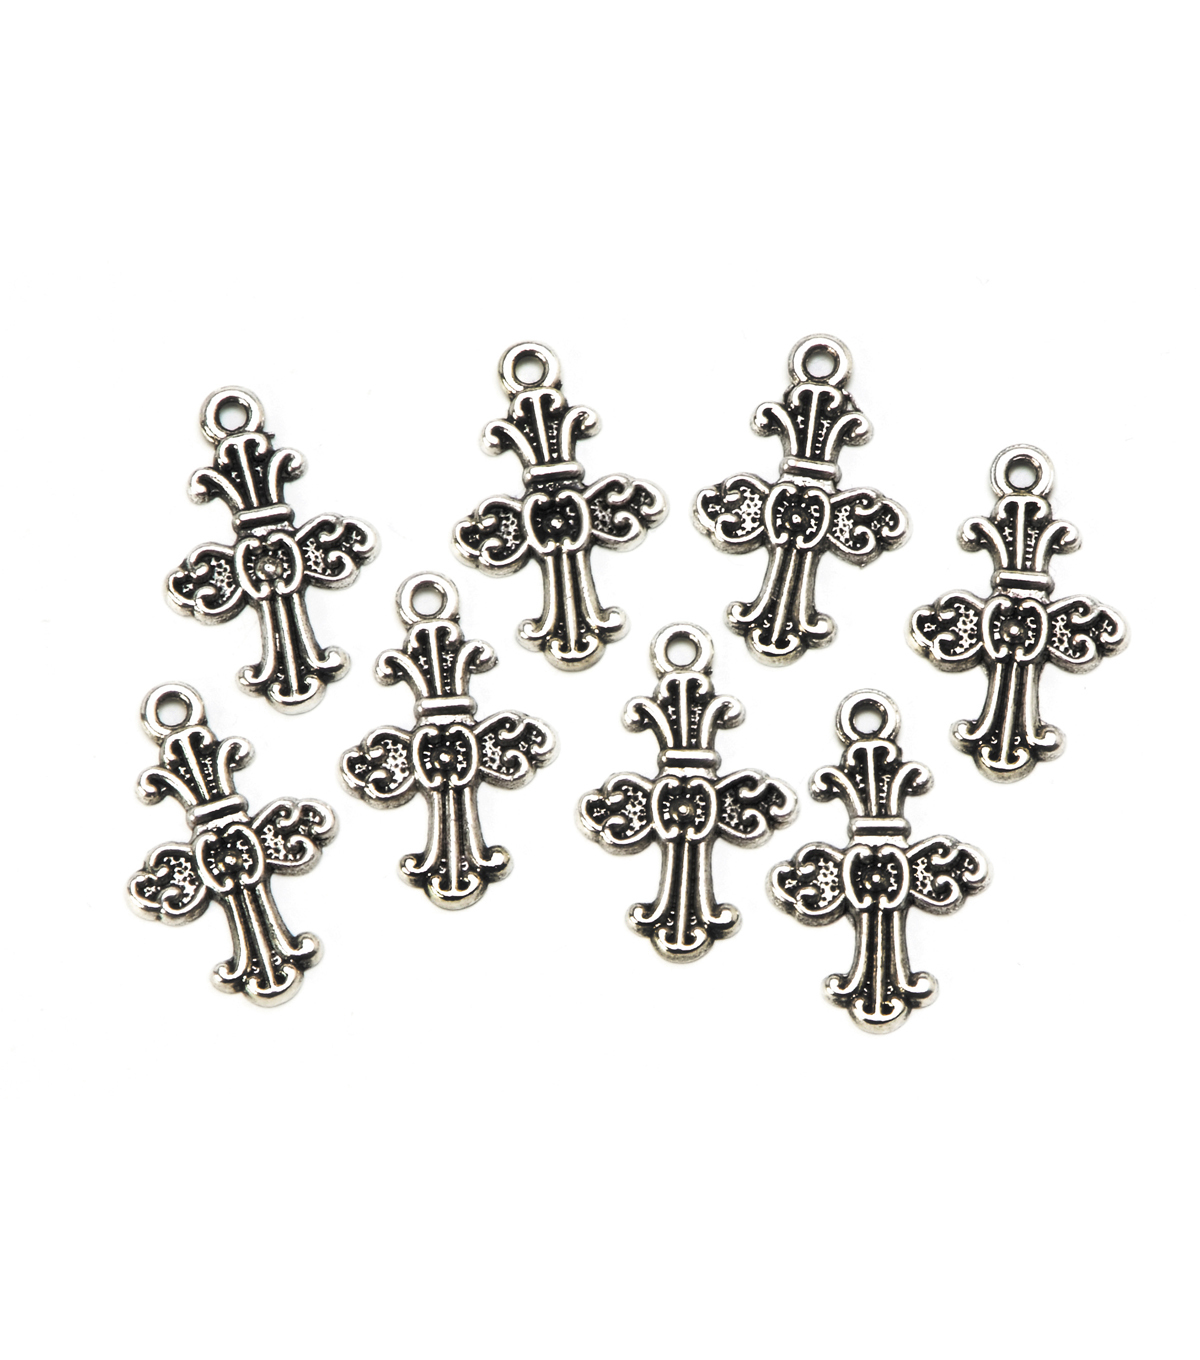 Cast Metal Cross Charms, Antique Silver Finish